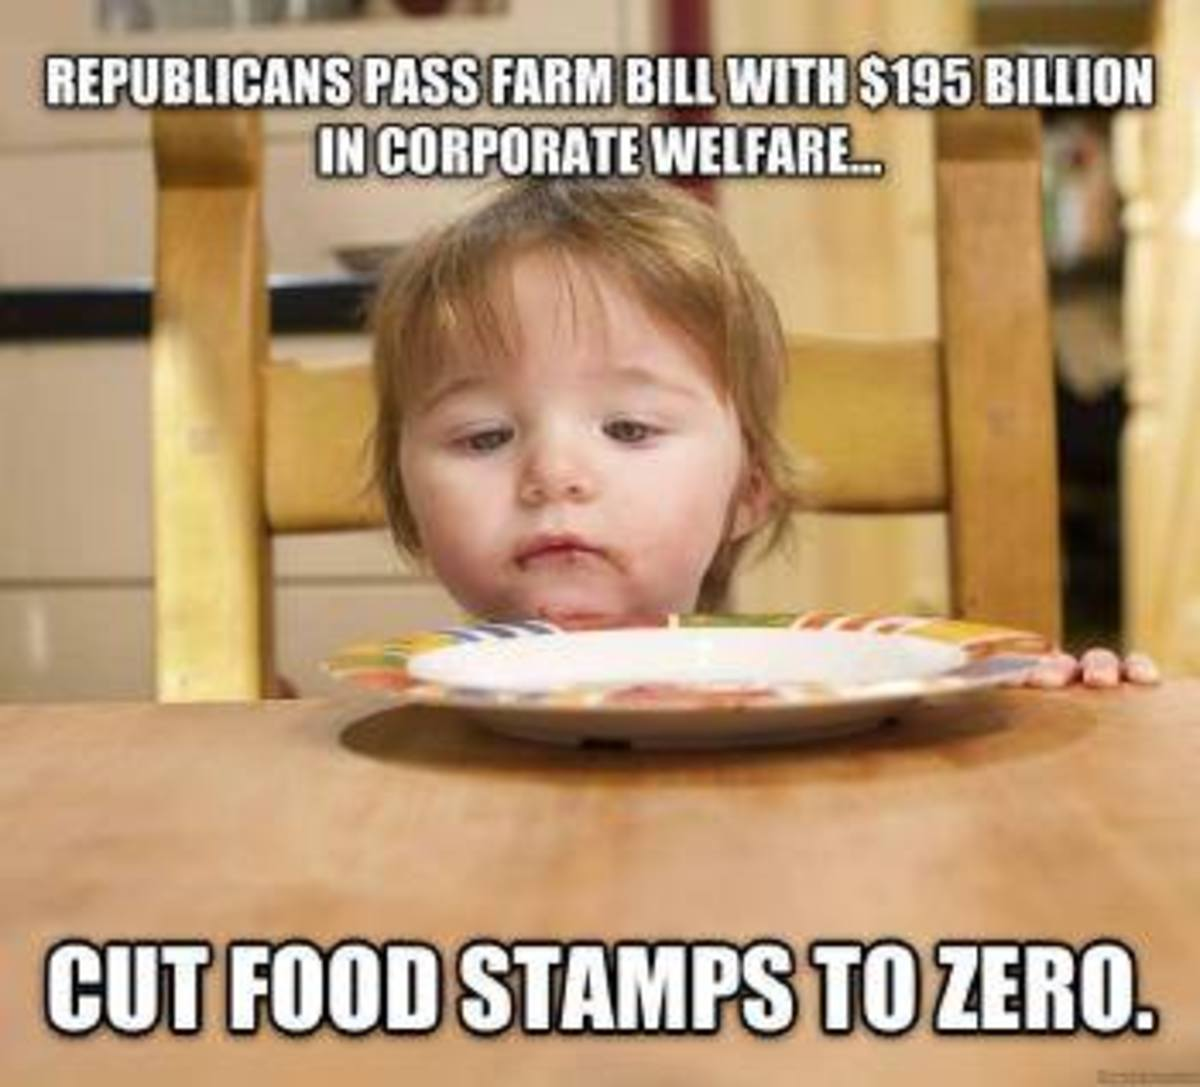 If they don't benefit from it, they cut it!